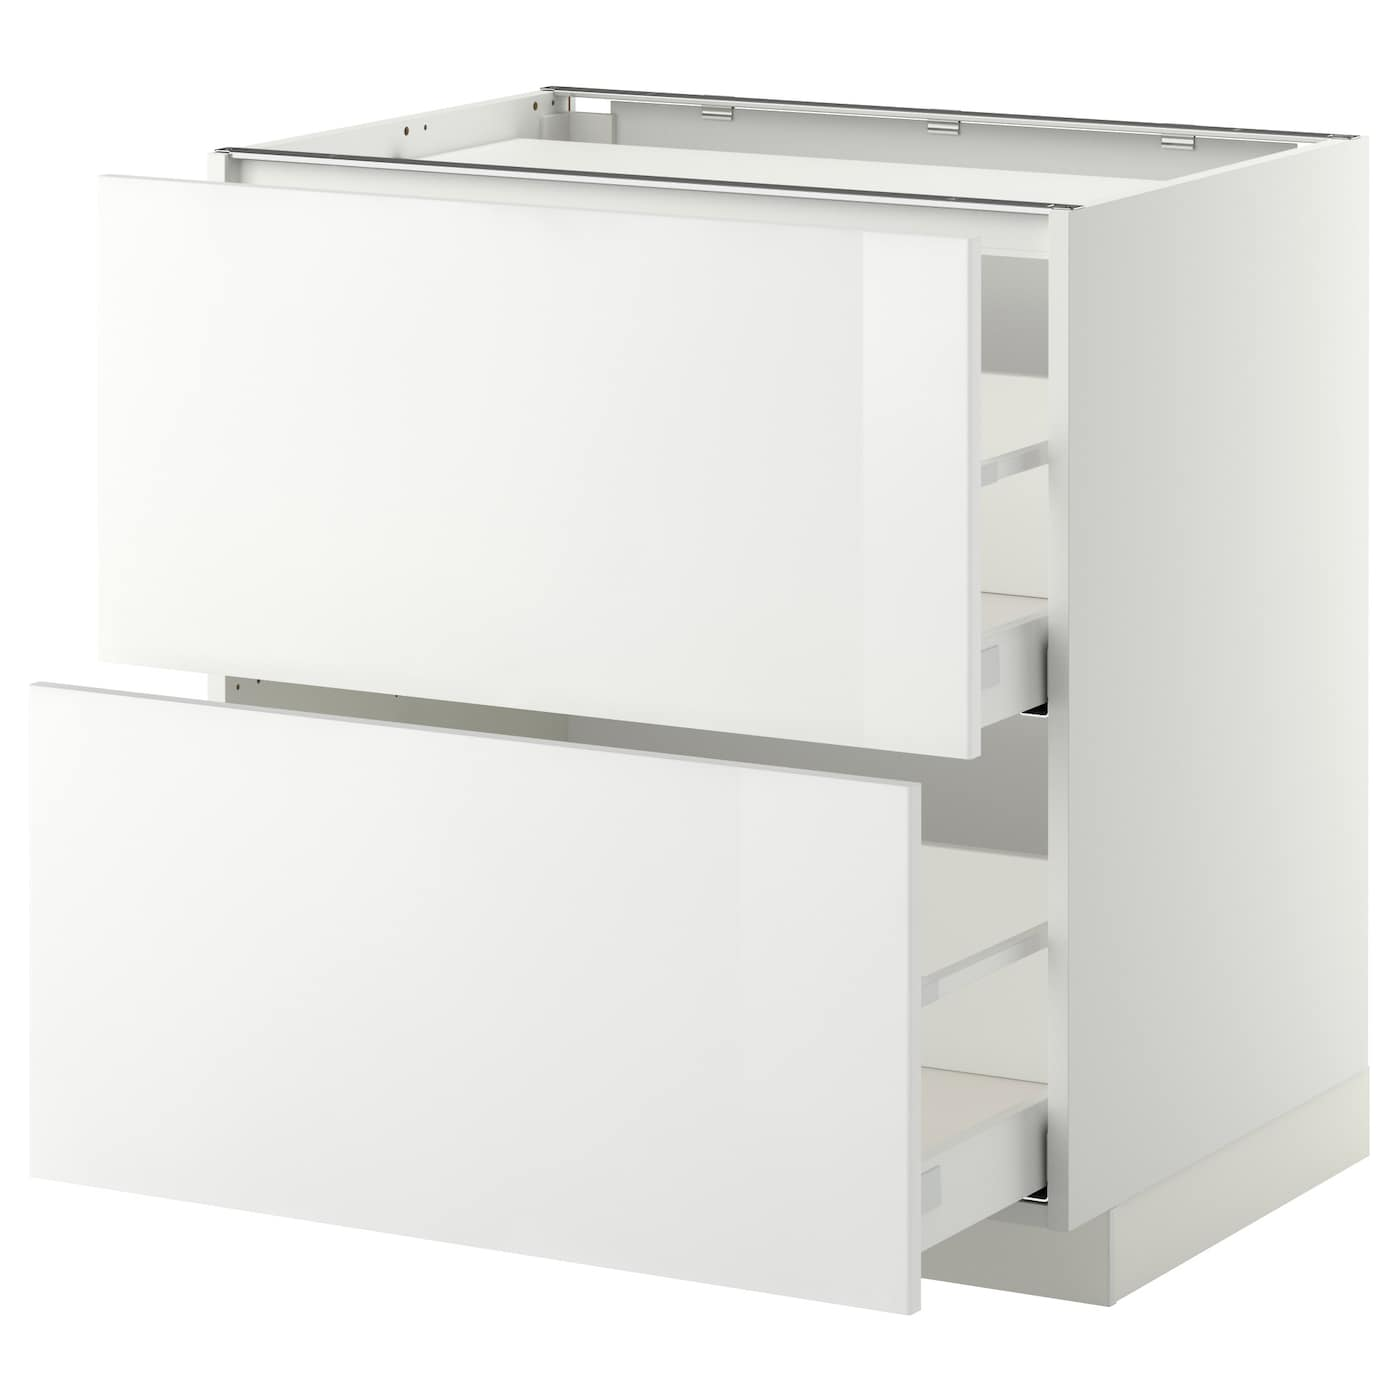 IKEA METOD base cab f hob/2 fronts/2 drawers Smooth-running drawers with stop.